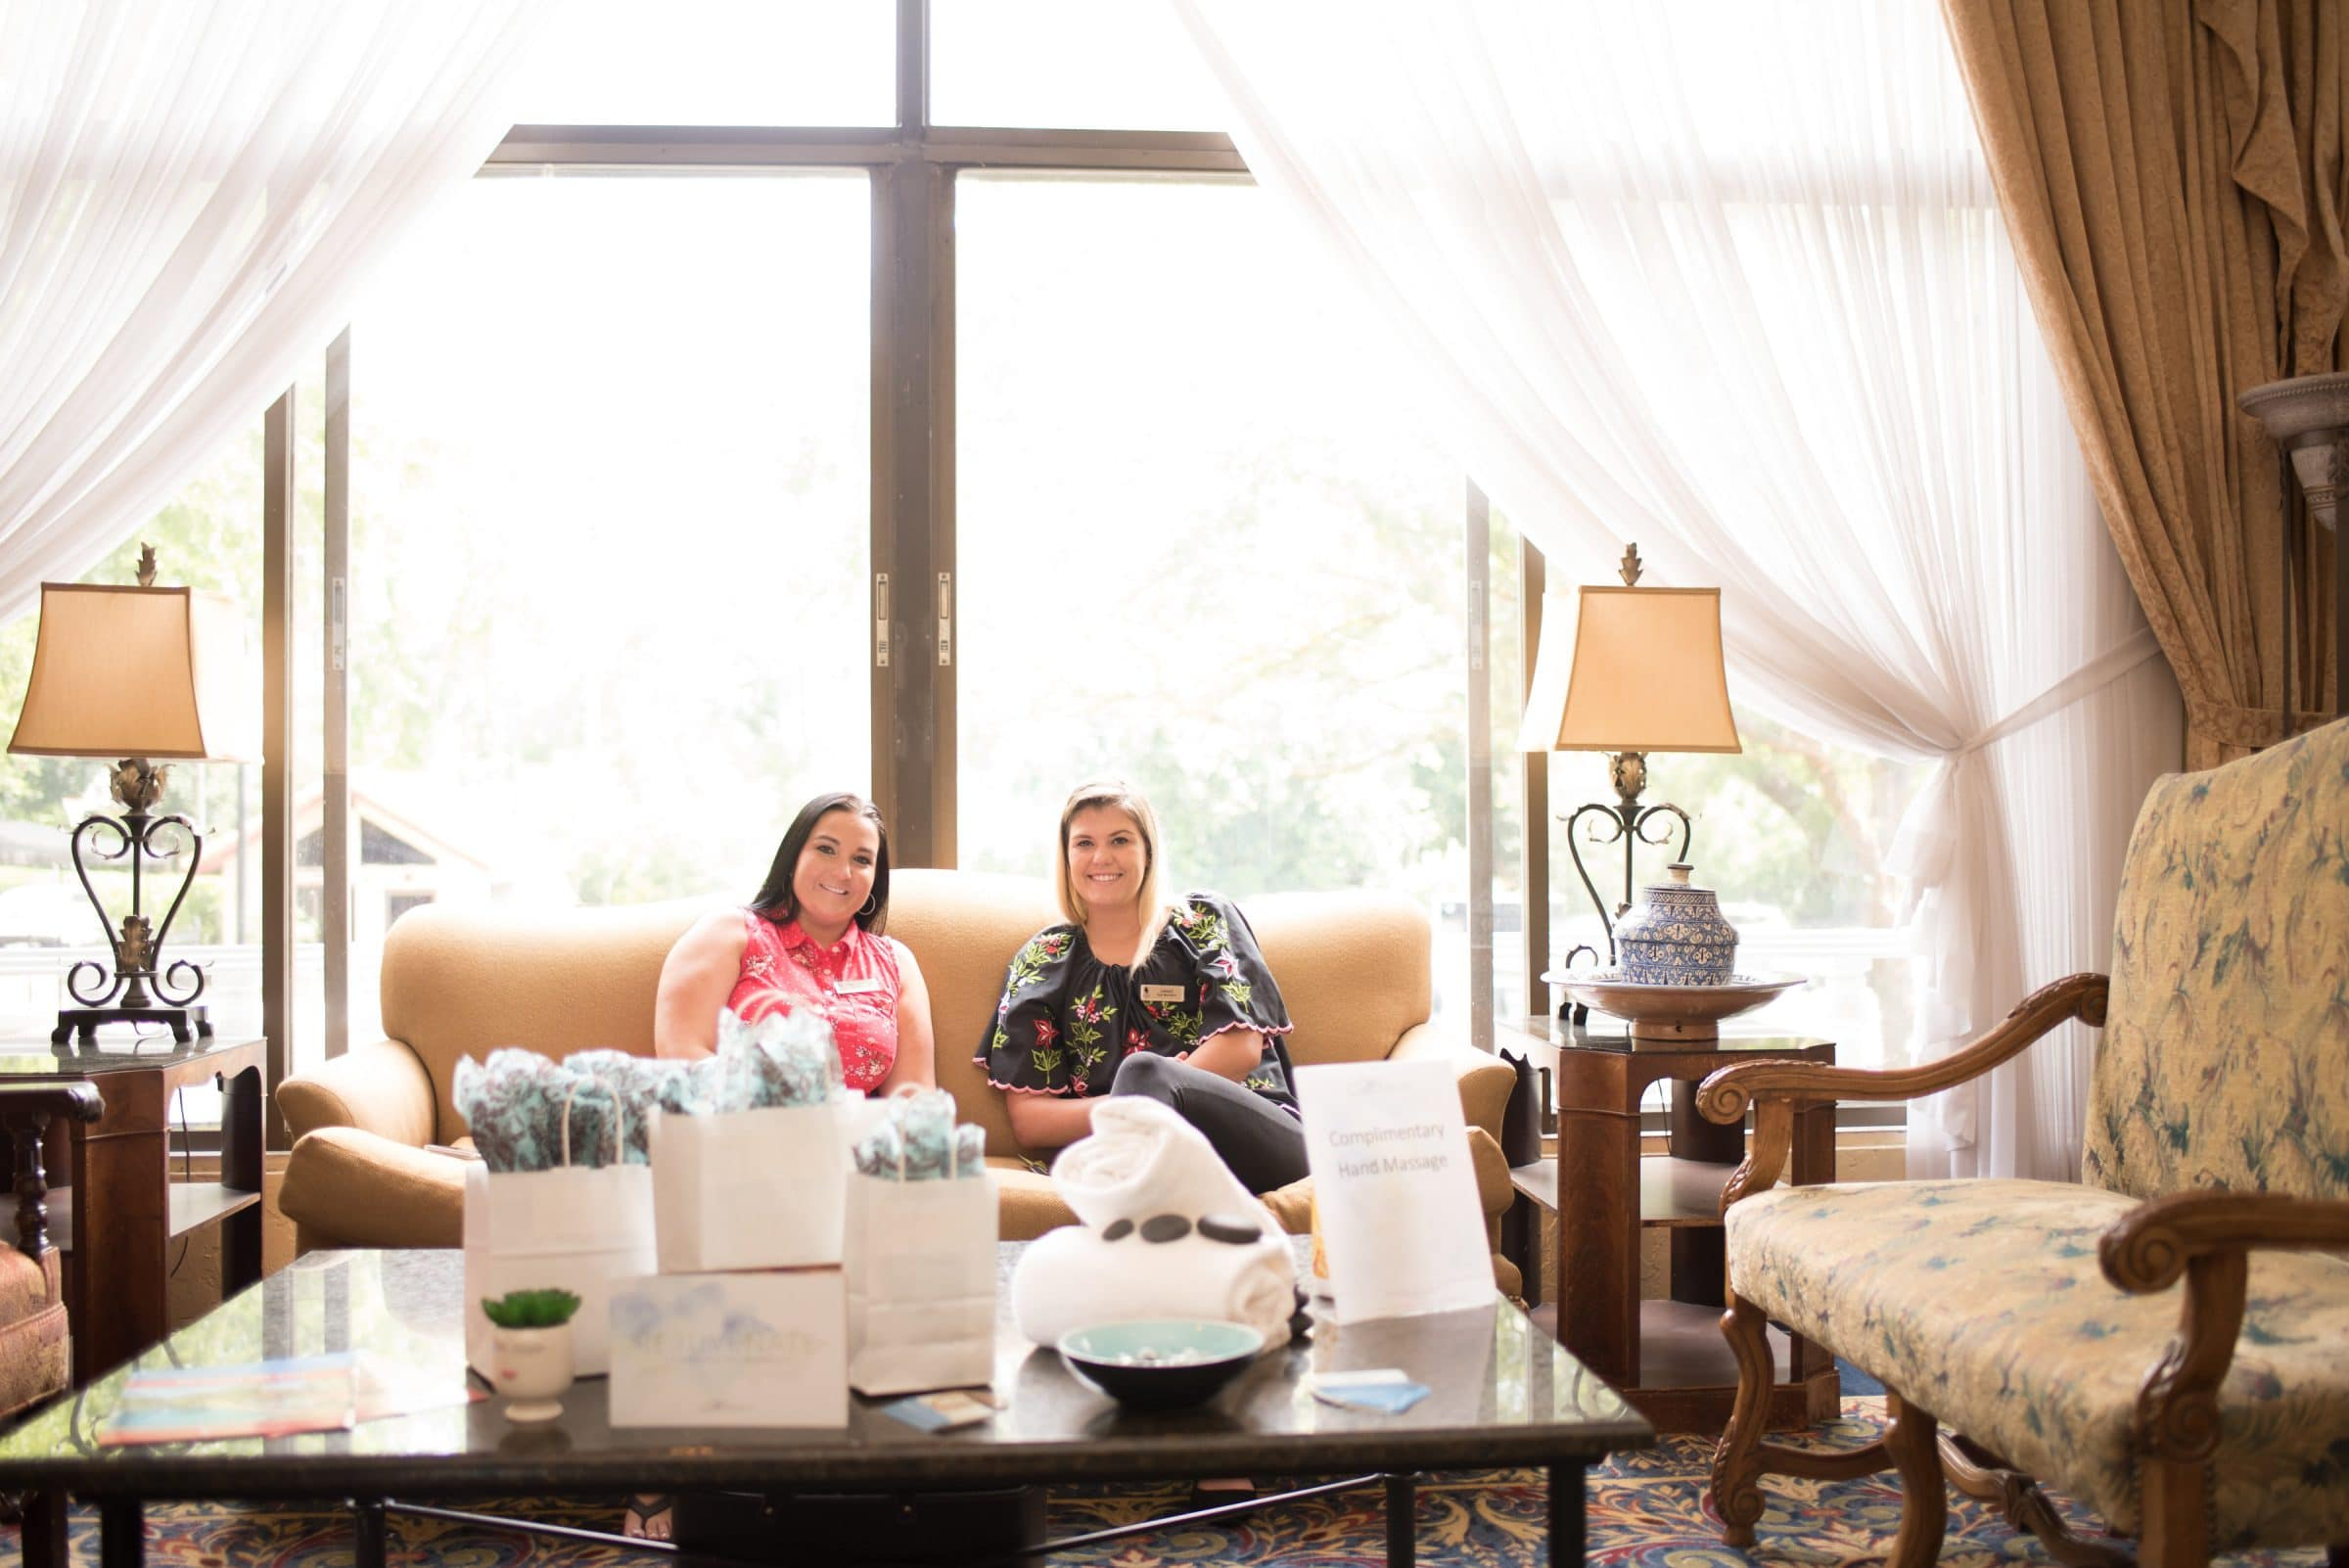 Two women sitting on a couch featuring spa services